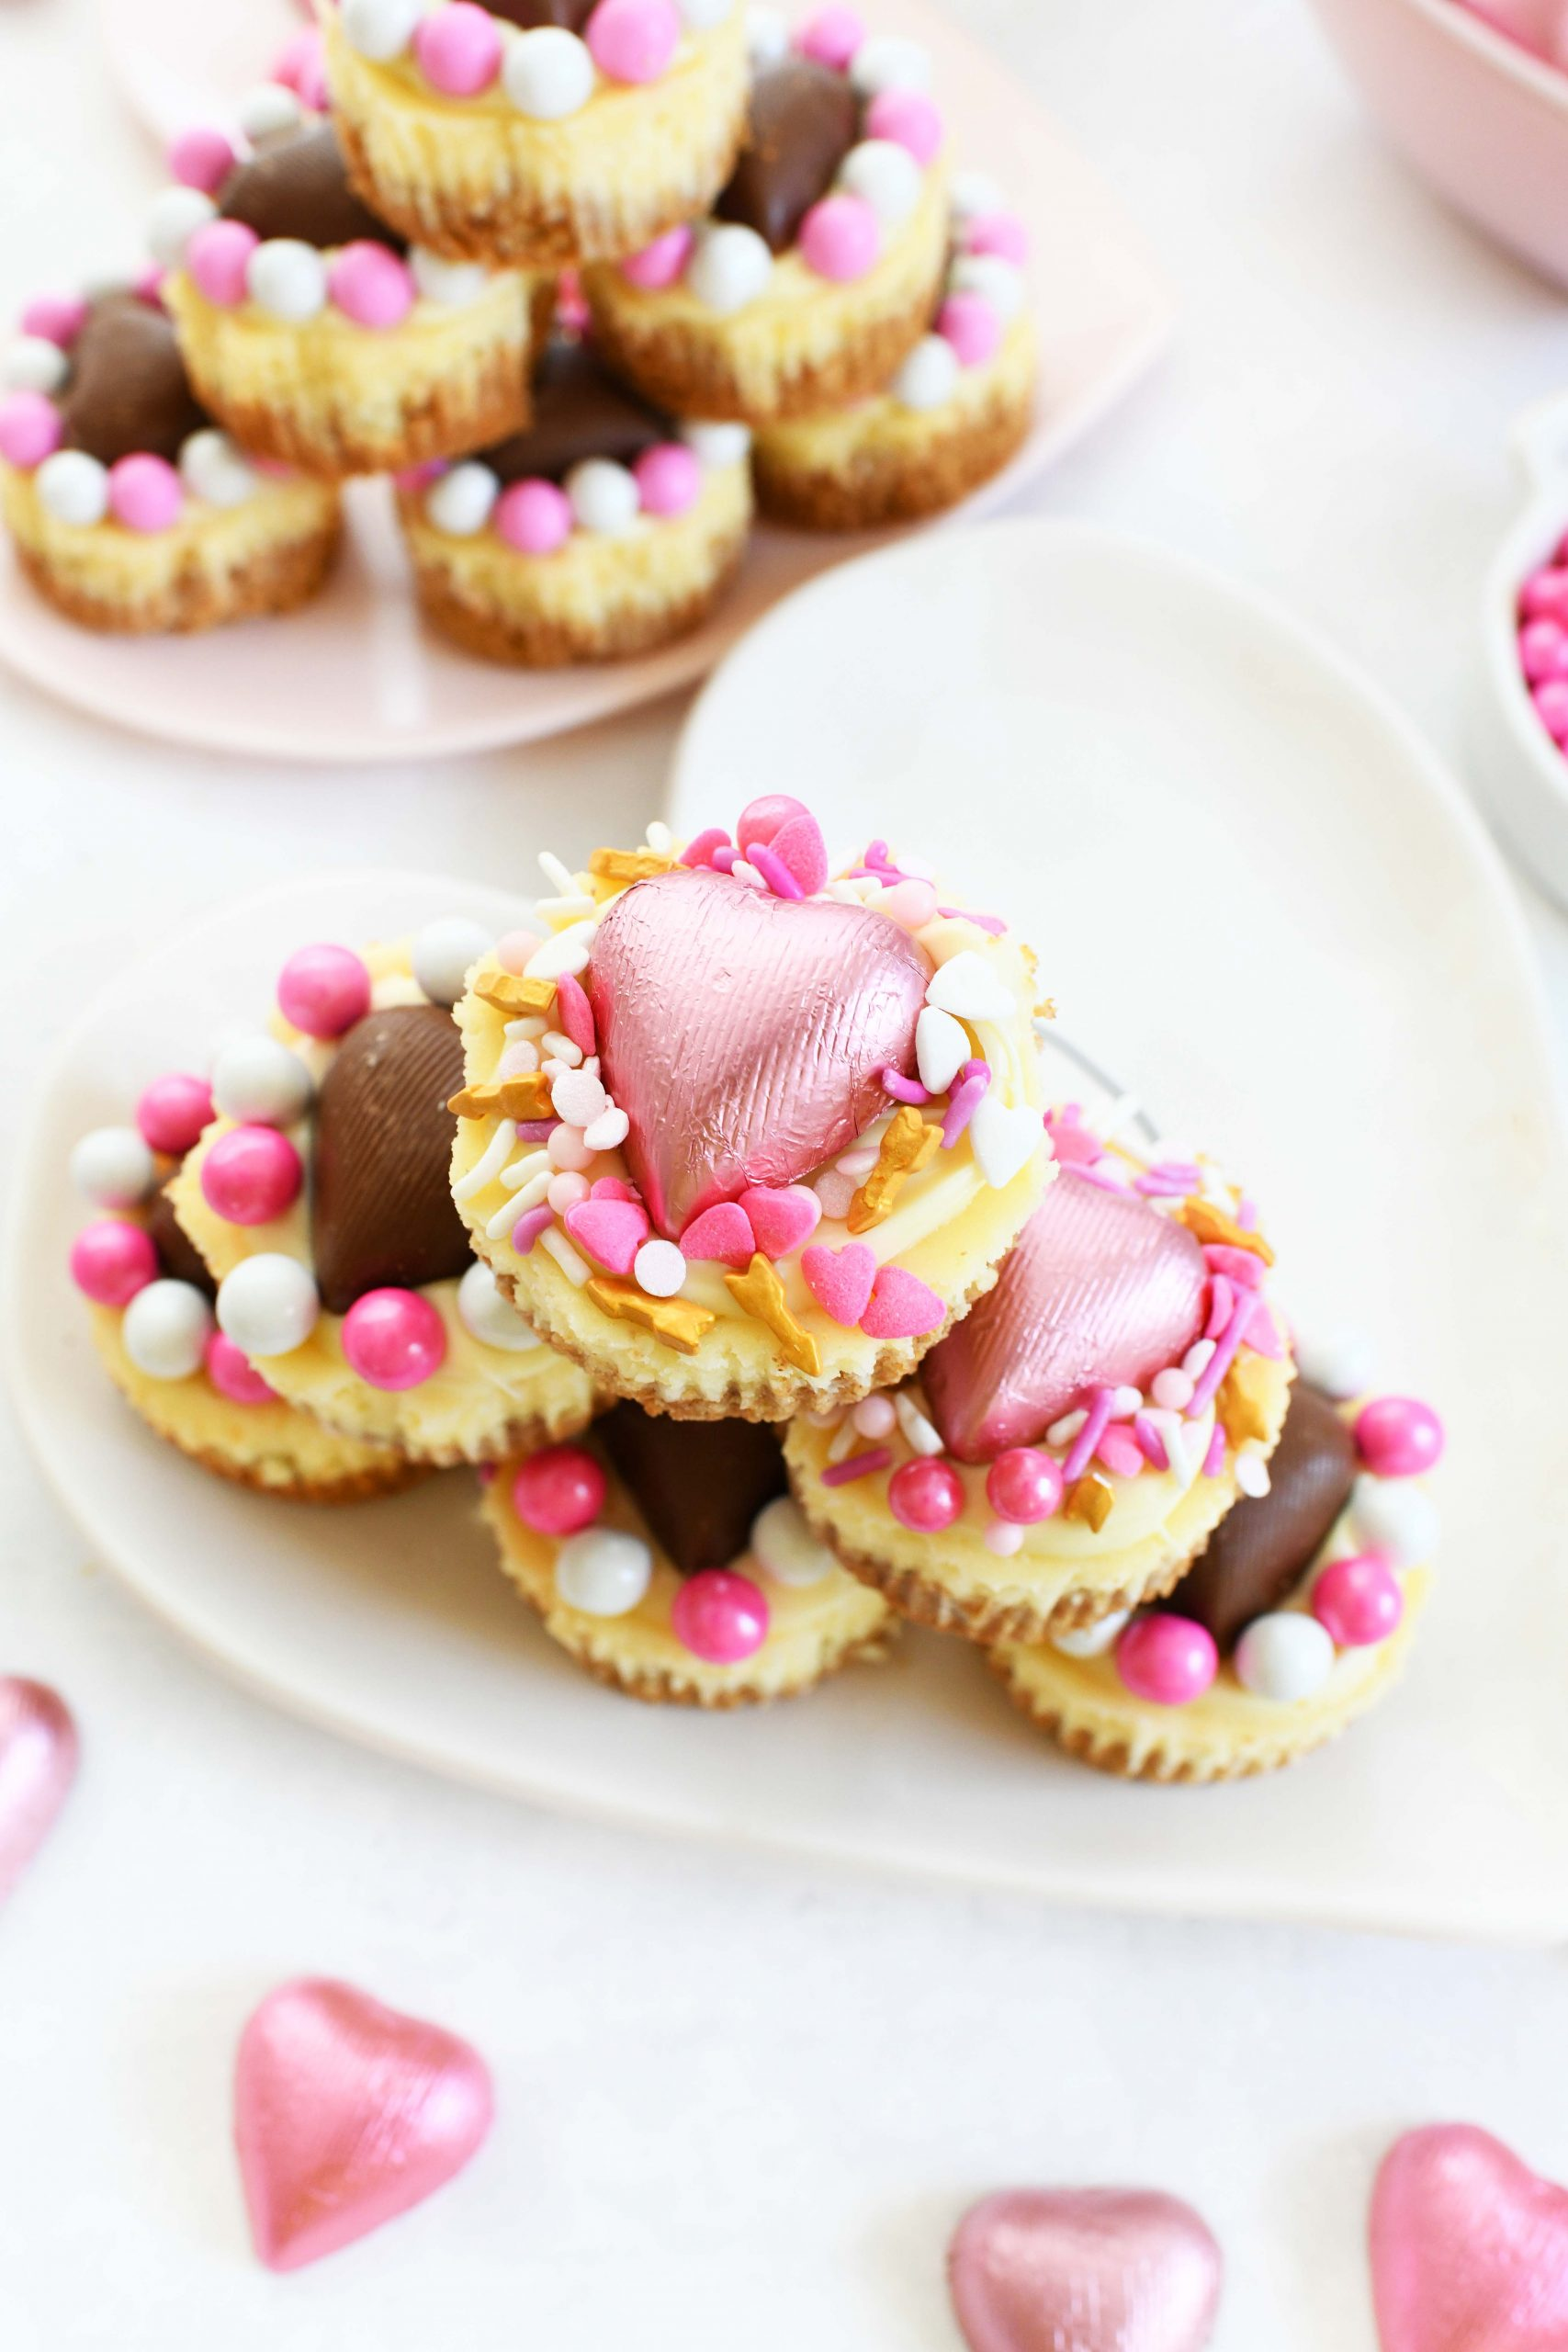 mini cheesecakes with valentine's day sprinkles and heart shaped chocolates on top.